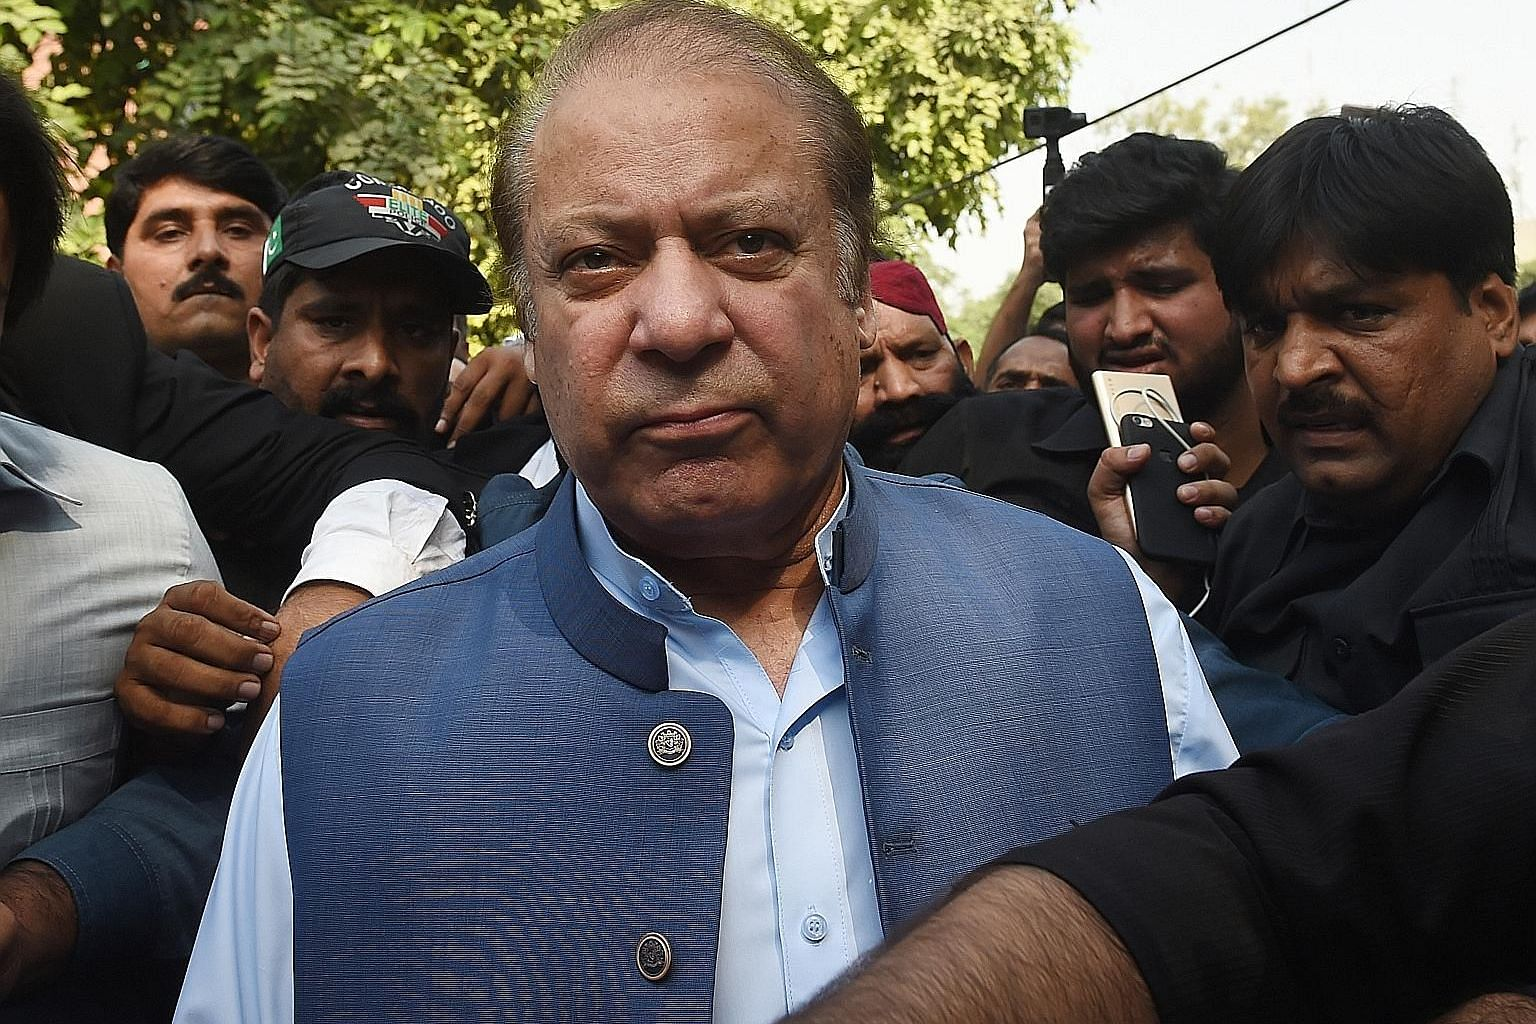 Former Pakistan premier Nawaz Sharif was serving a seven-year jail term before a court granted him indefinite bail on medical grounds, after which he flew to Britain for medical treatment.